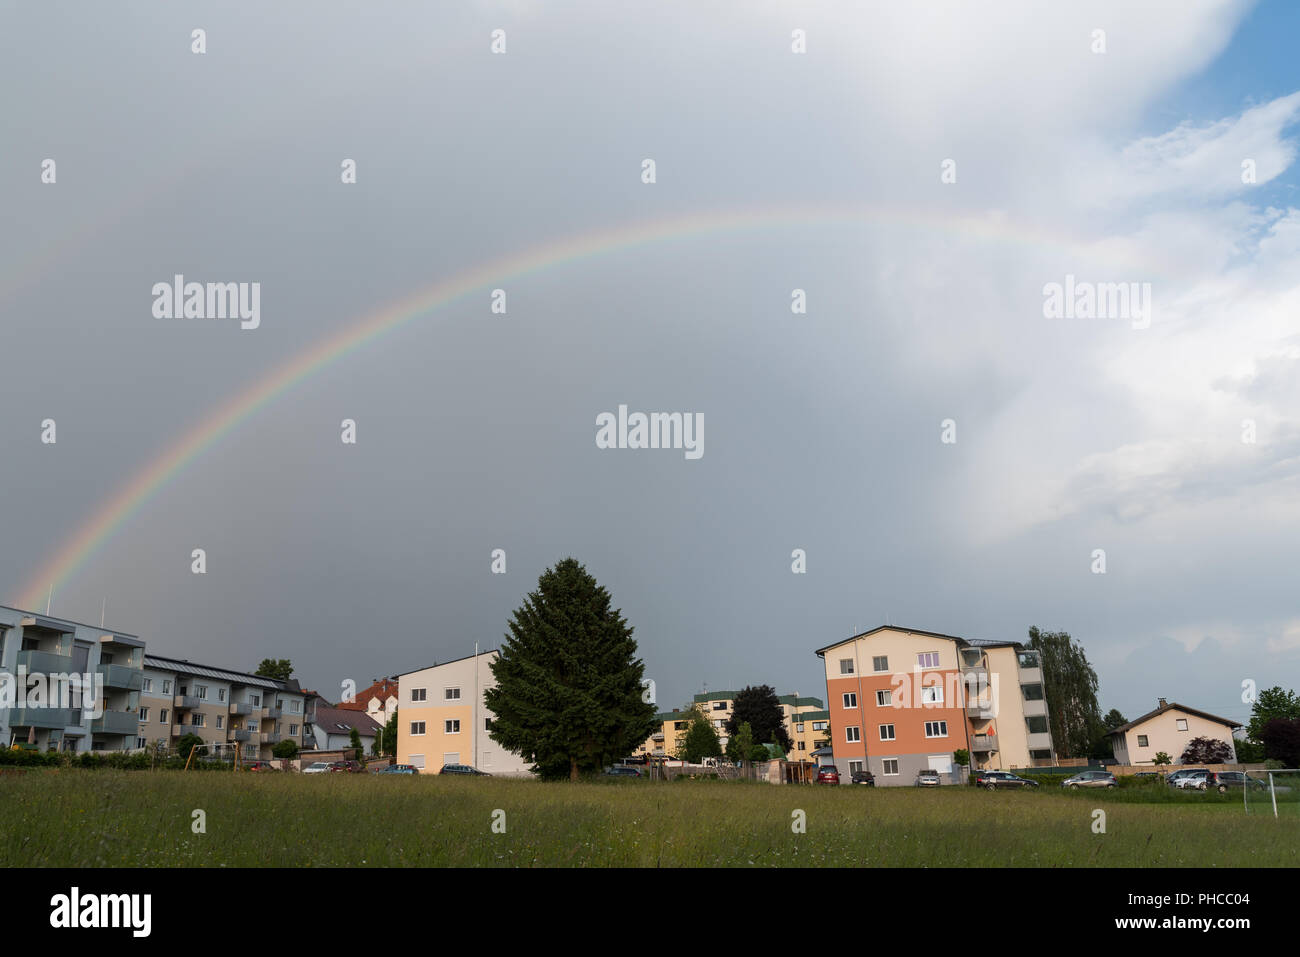 Bright rainbow in partly cloudy sky in the country - Stock Image